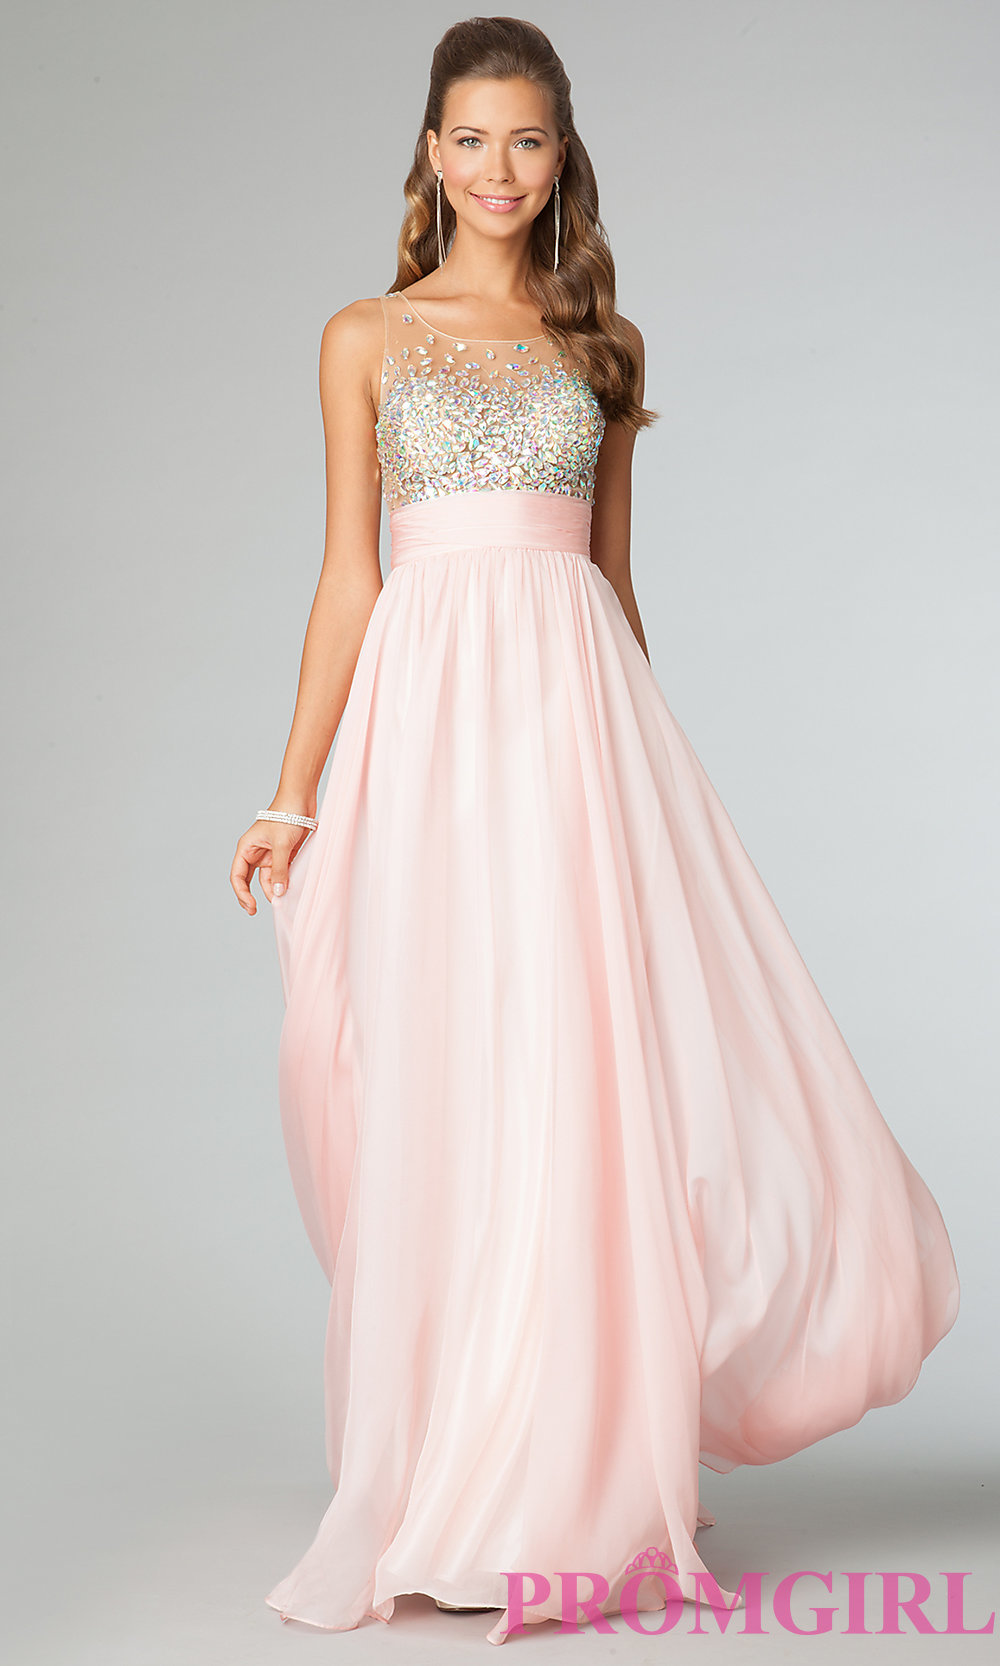 Searching the largest collection of Cheap Prom Dress Stores Near Me at the cheapest price in uctergiyfon.gq Here offers all kinds of Cheap Prom Dress Stores Near Me with the unique styles. Buy Cheap Prom Dress Stores Near Me in Tbdress, you will get the best service and high discount.